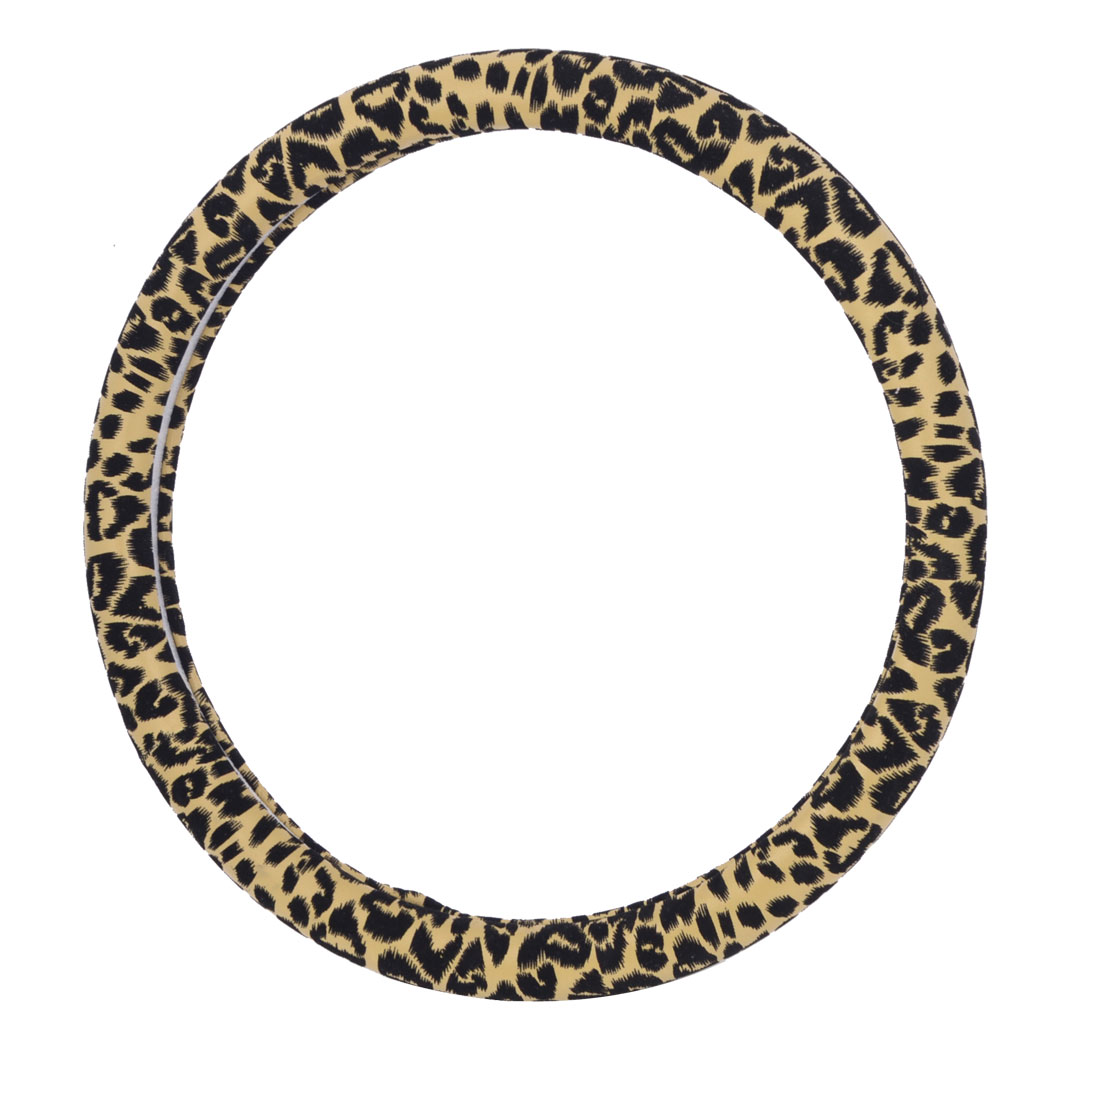 36cm Dia Black Brown Leopard Print Coated Steering Wheel Cover Protector for Car